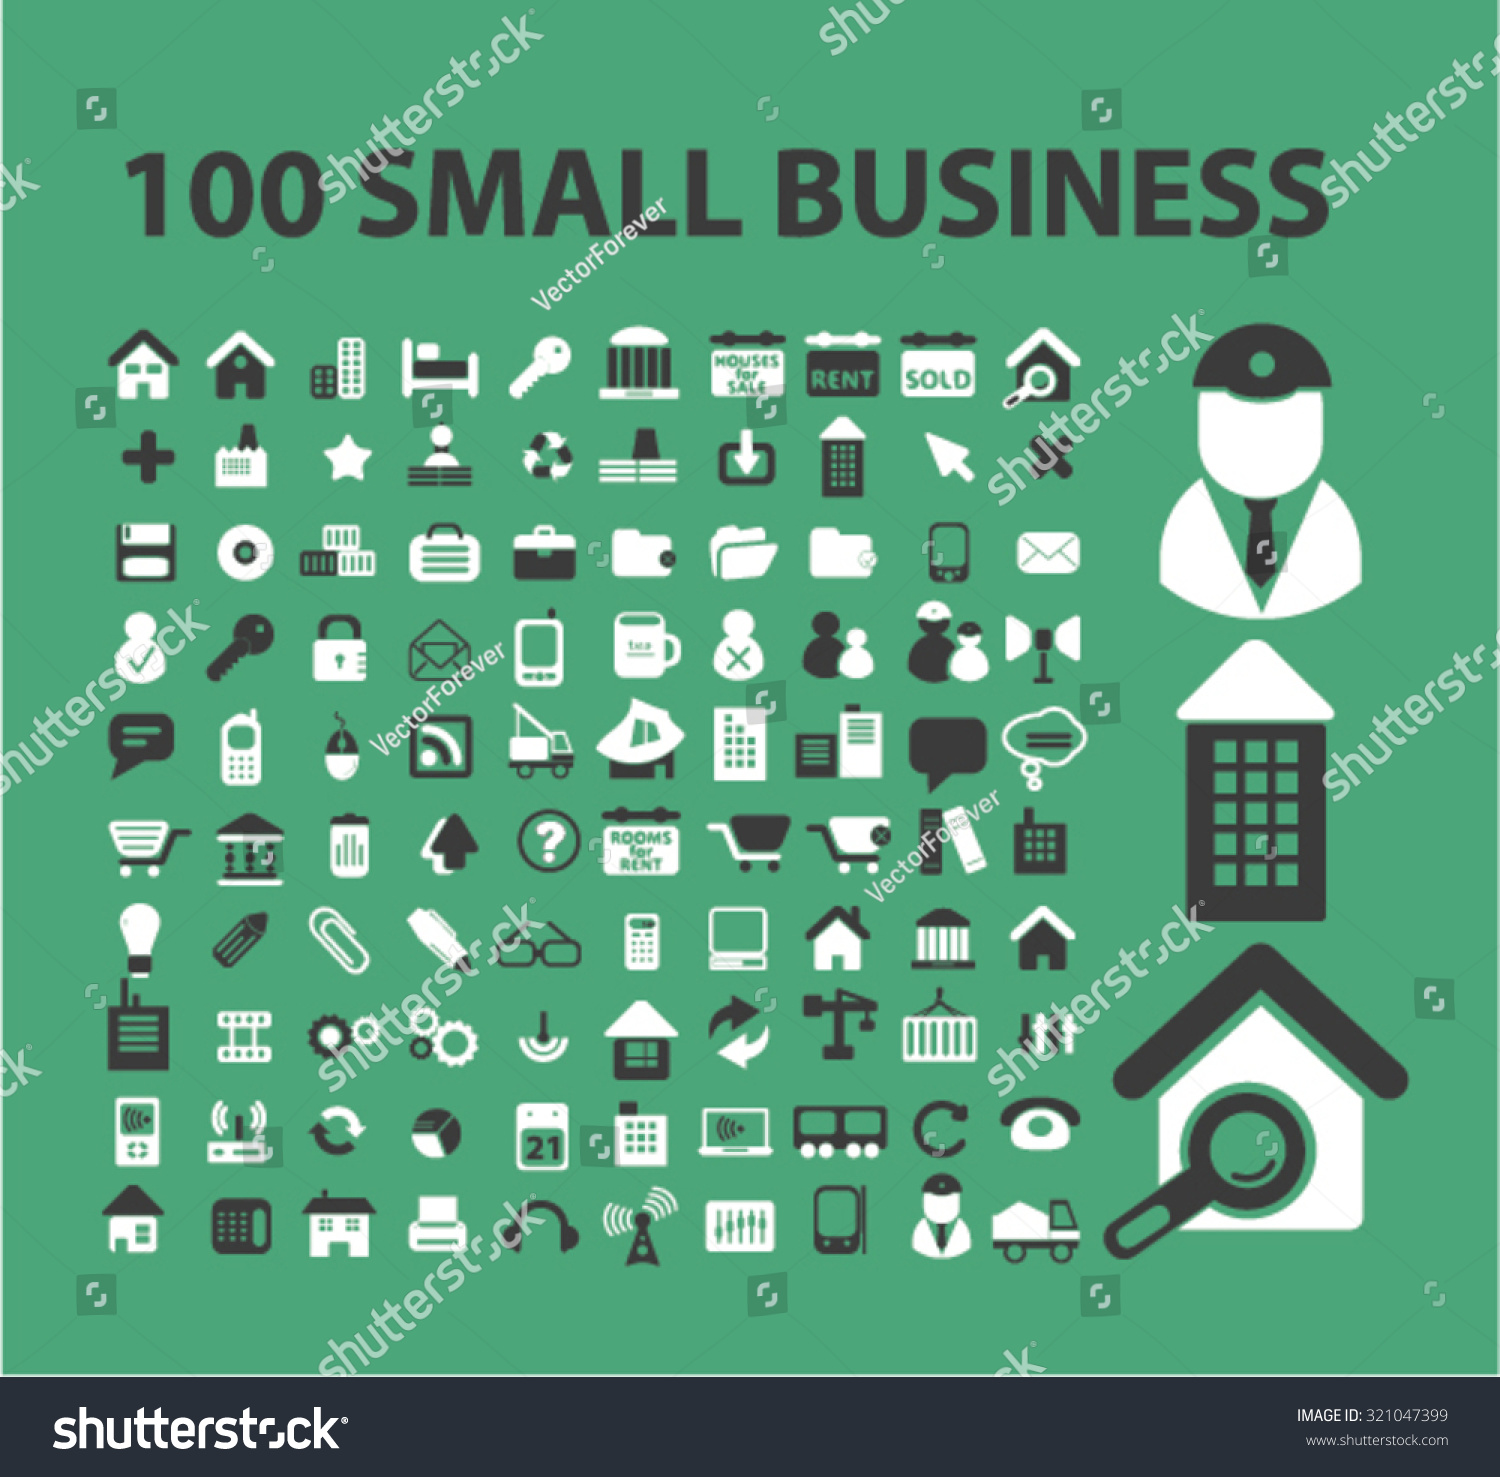 hight resolution of 100 small business company icons